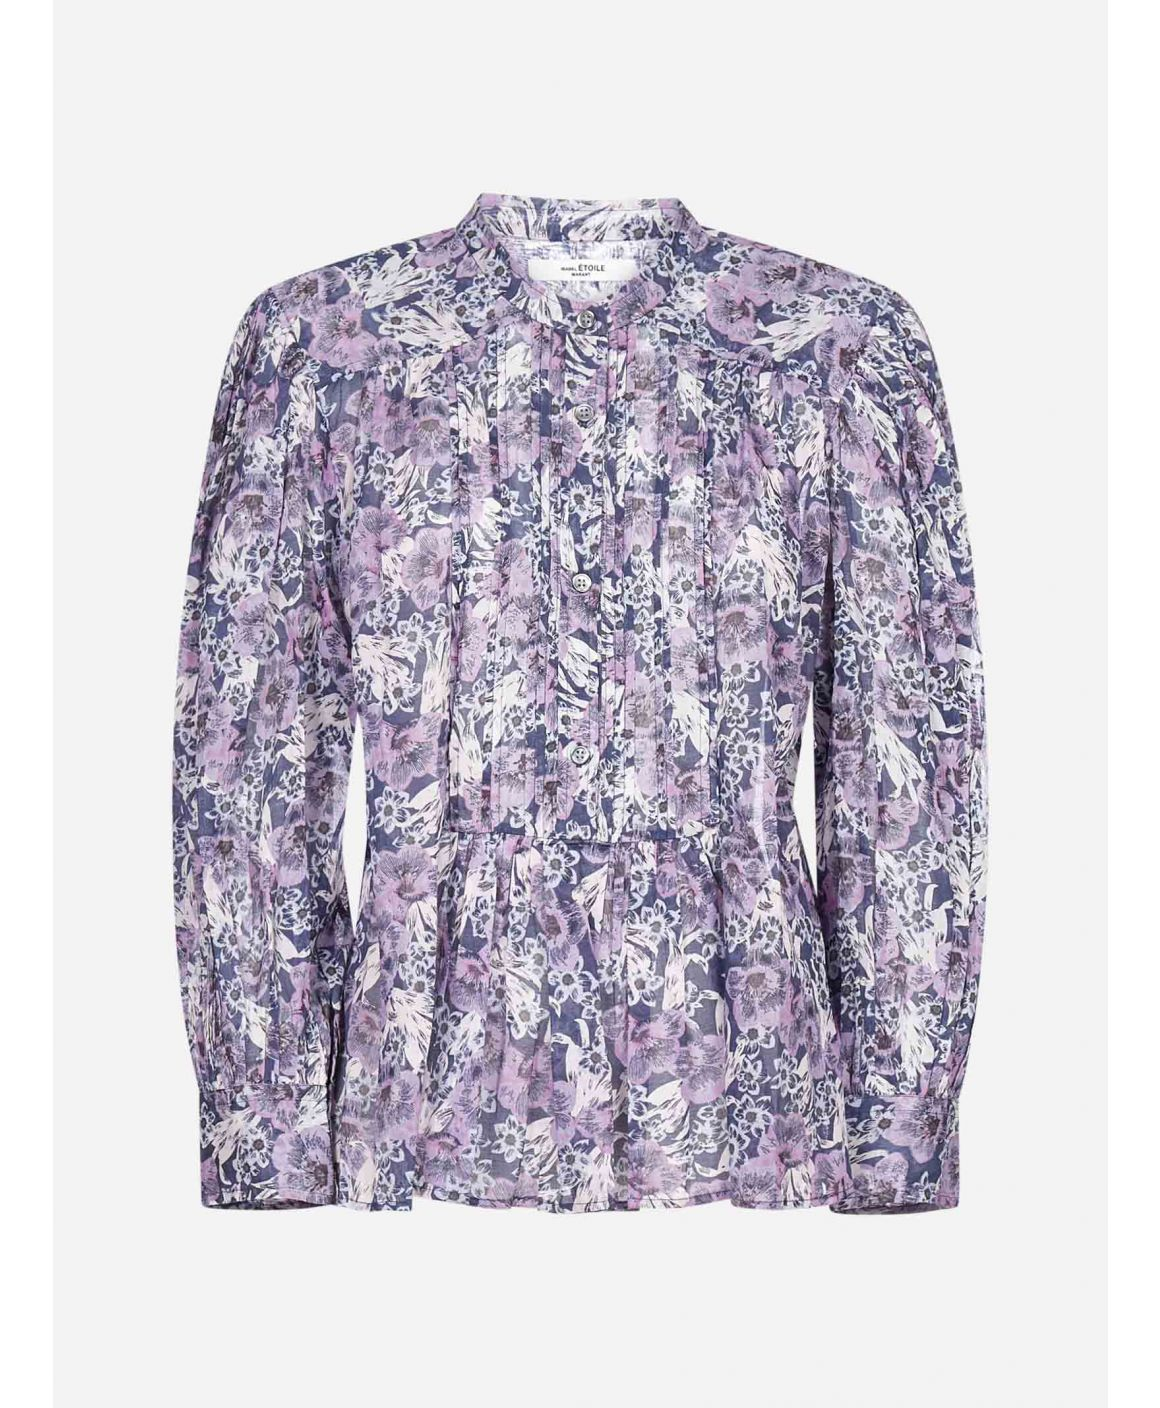 Adigra floral print cotton shirt